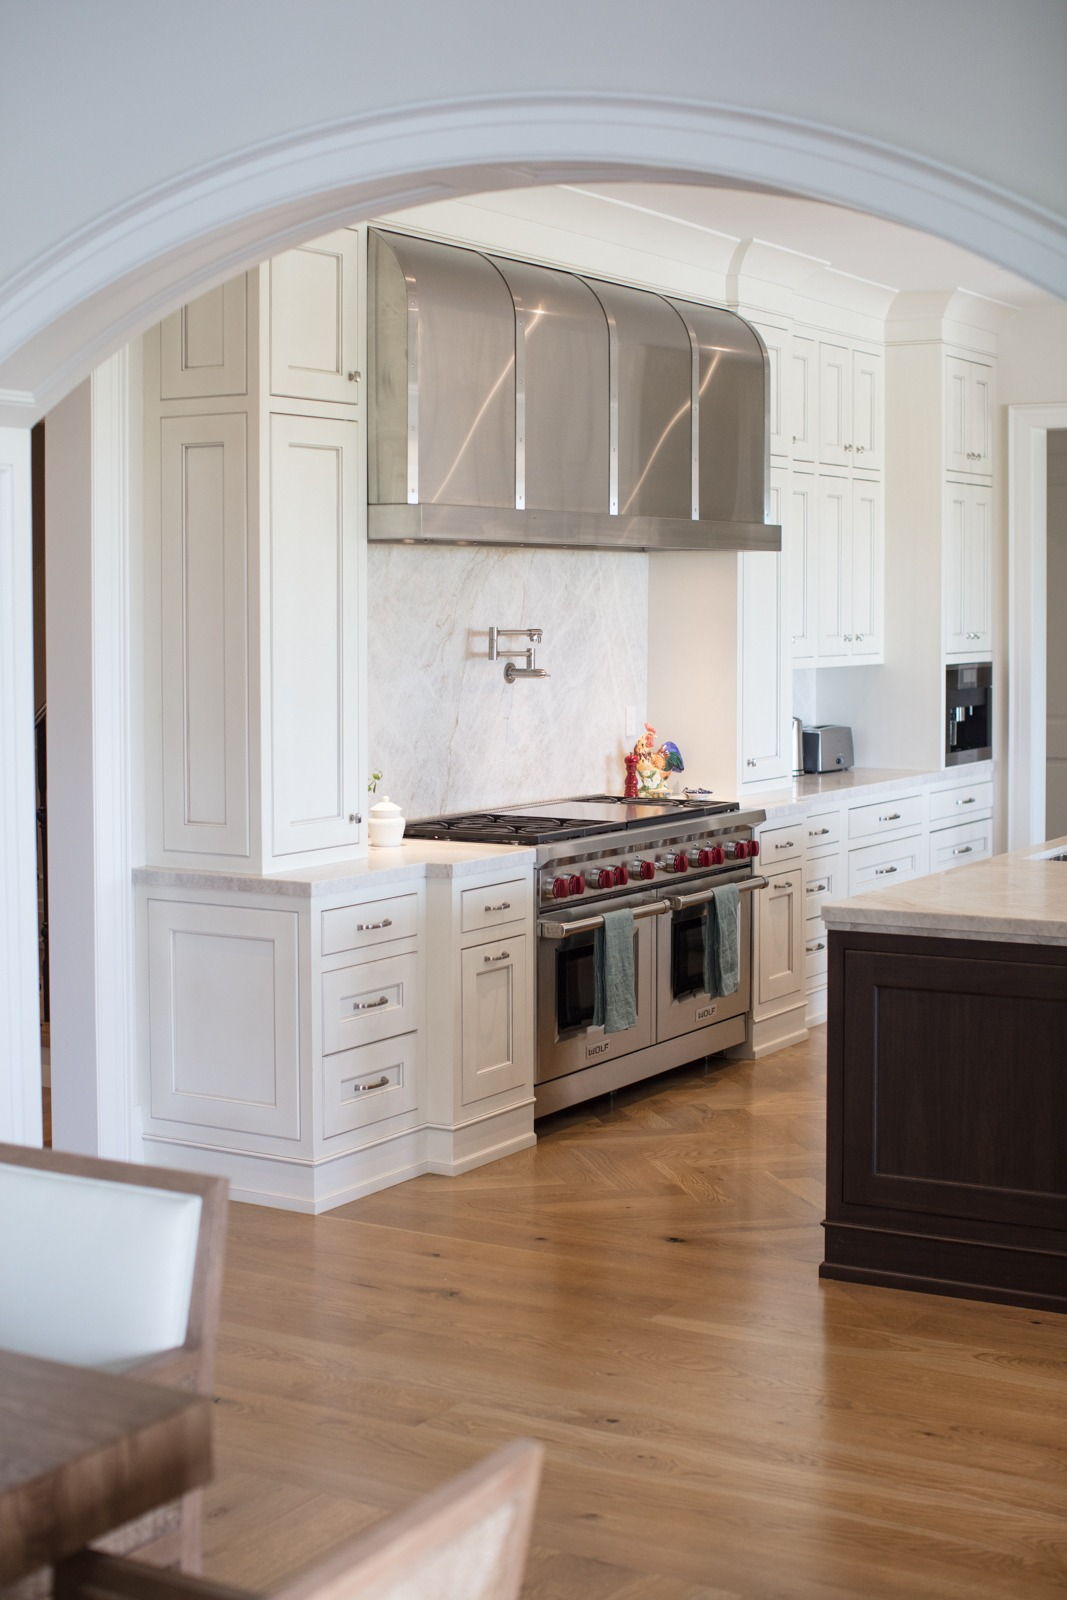 Massive Contemporary Range Hood in Stainless Steel